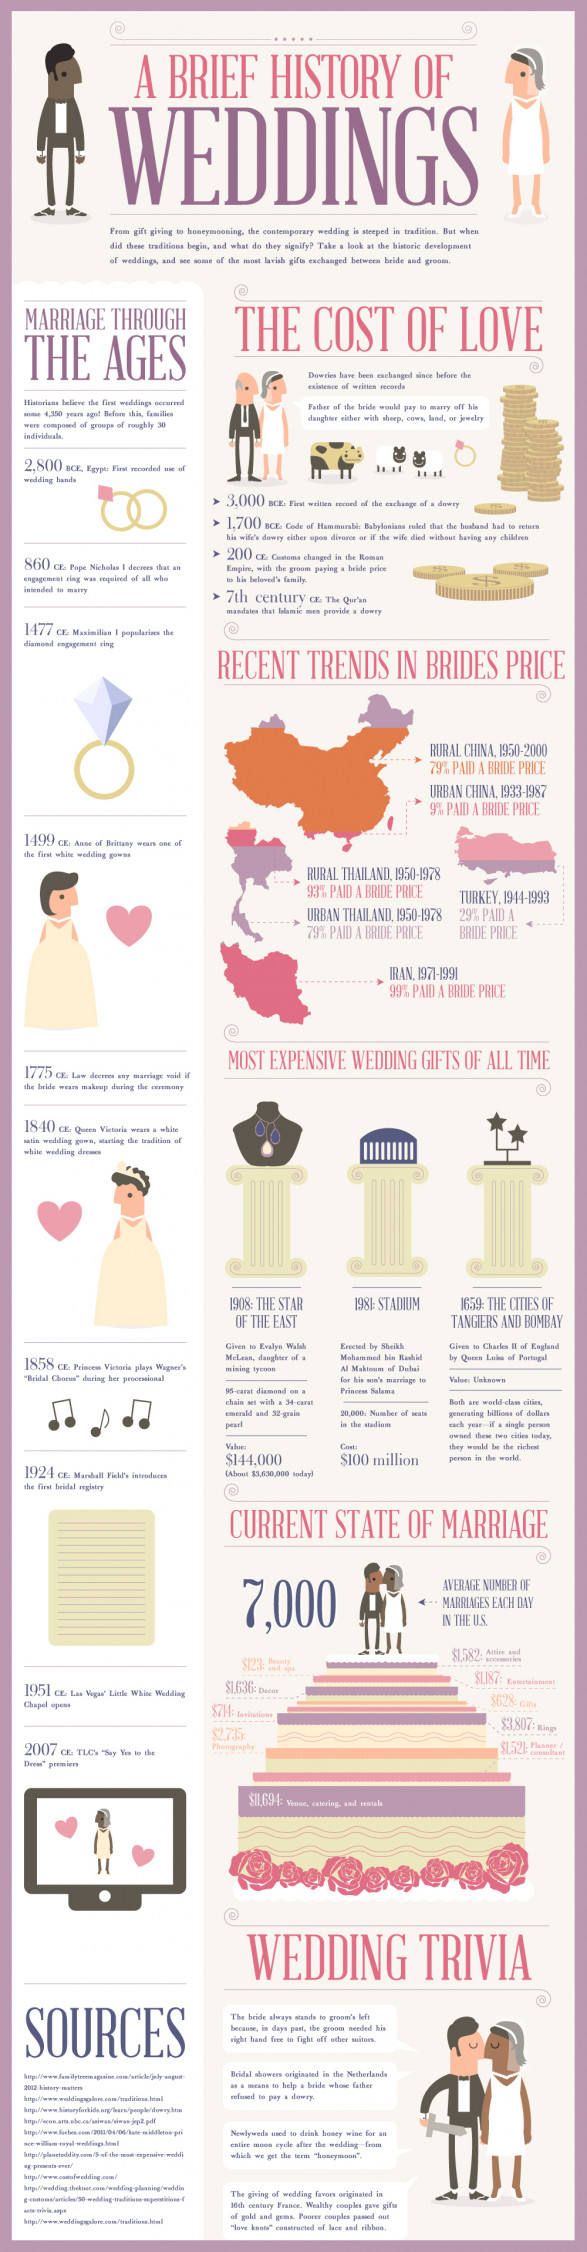 A Brief History Of Weddings